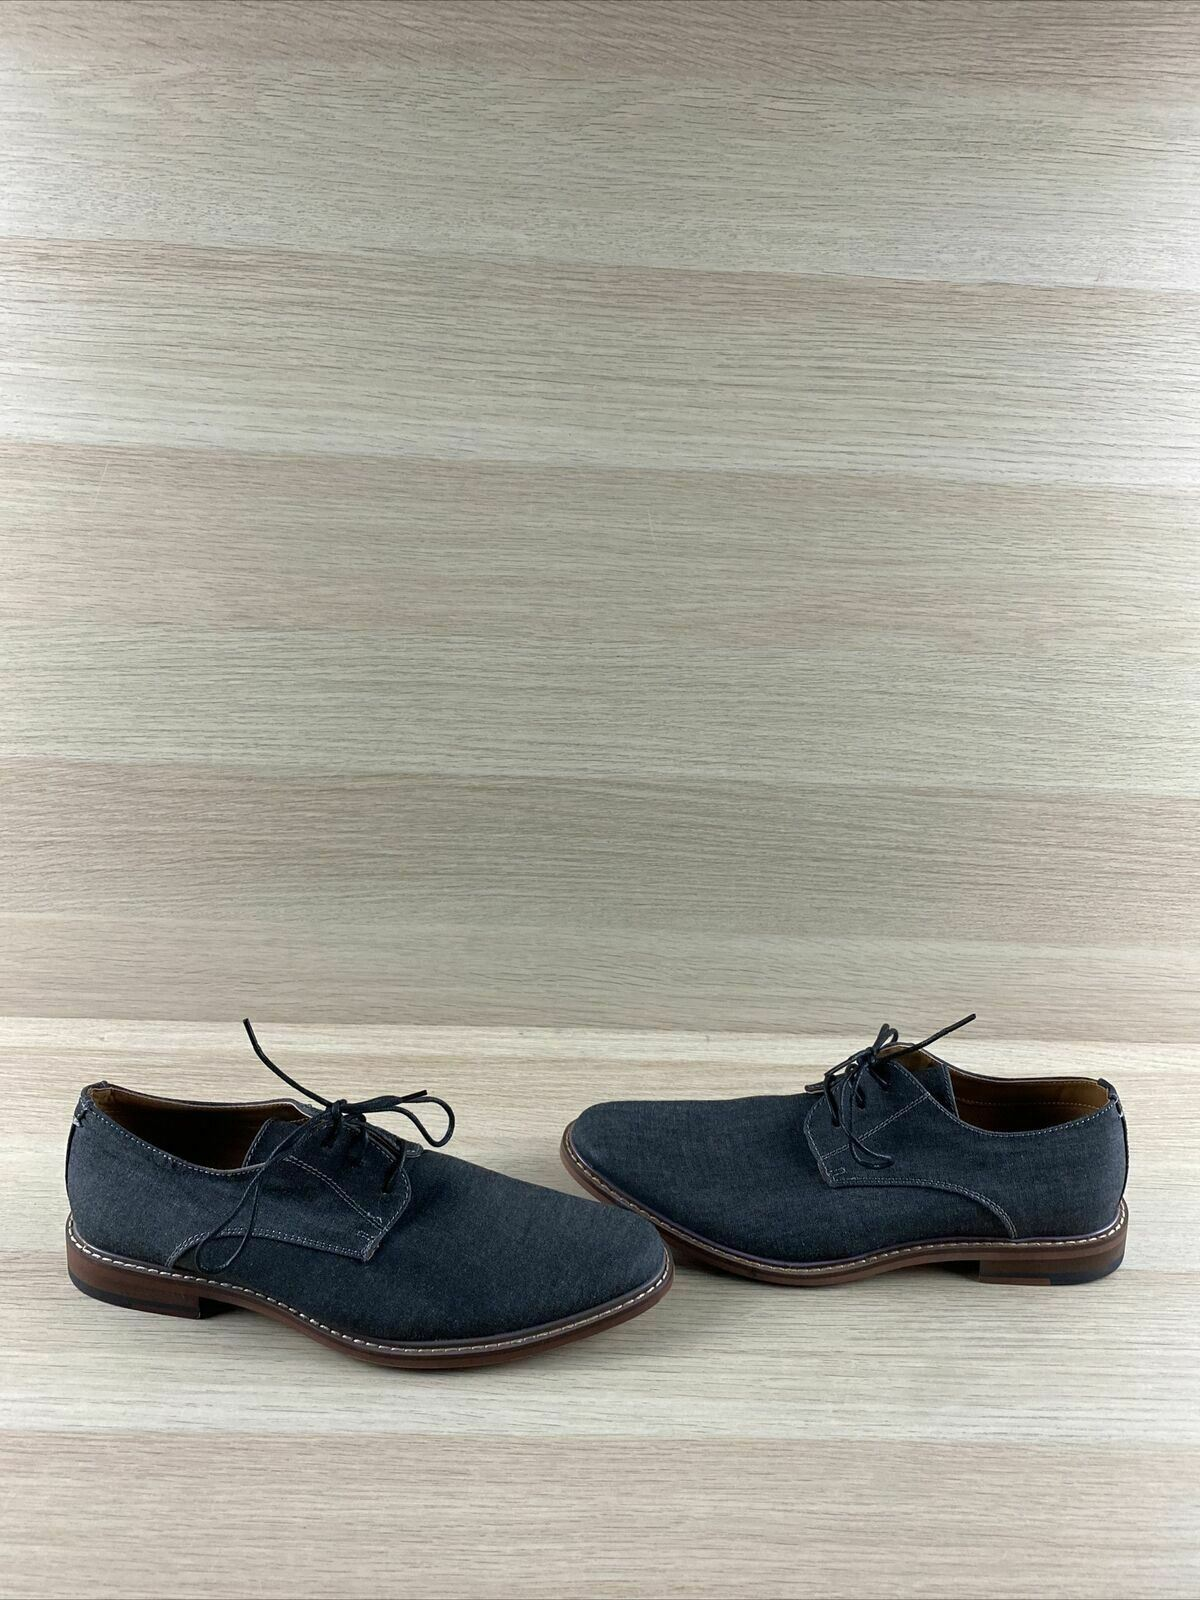 J75 by JUMP 'Primo' Navy Gray Textile Round Toe Lace Up Oxfords Men's Size 9